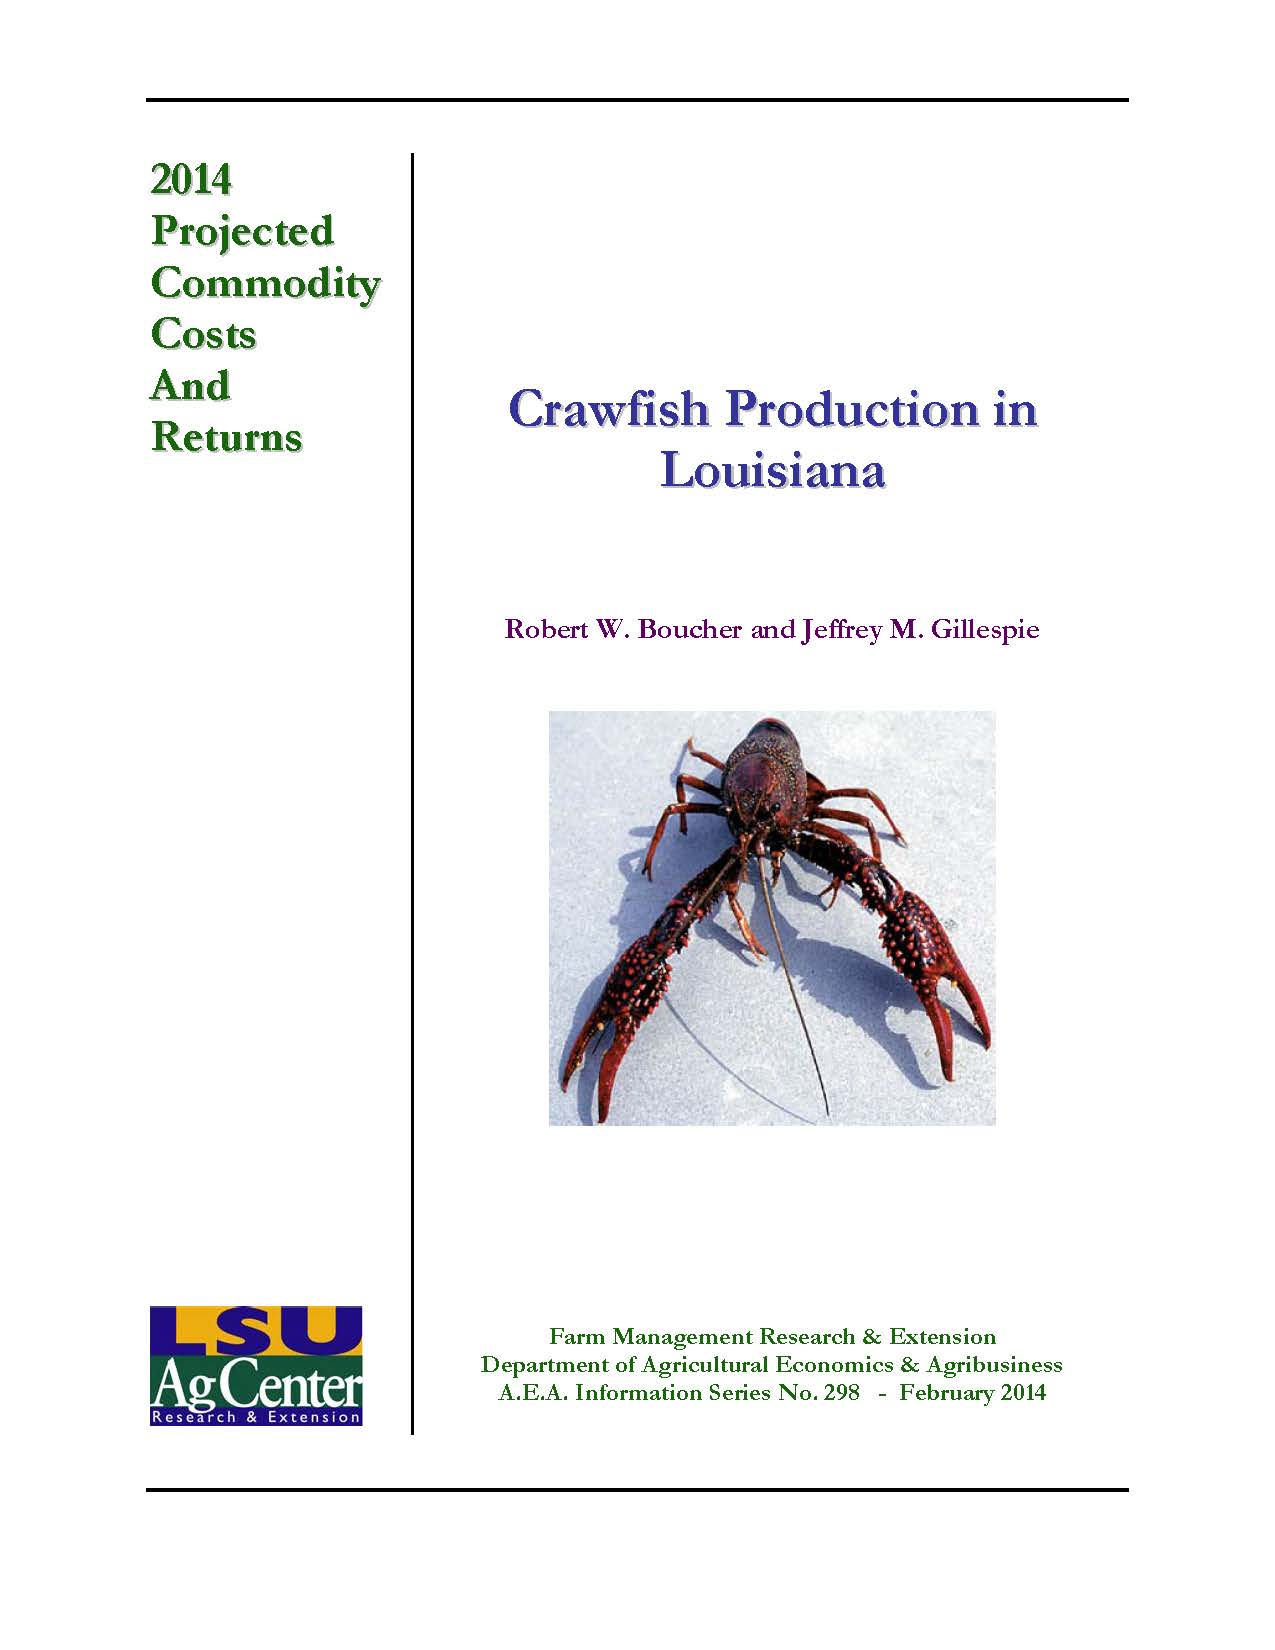 Projected Costs and Returns for Crawfish Production in Louisiana 2014.